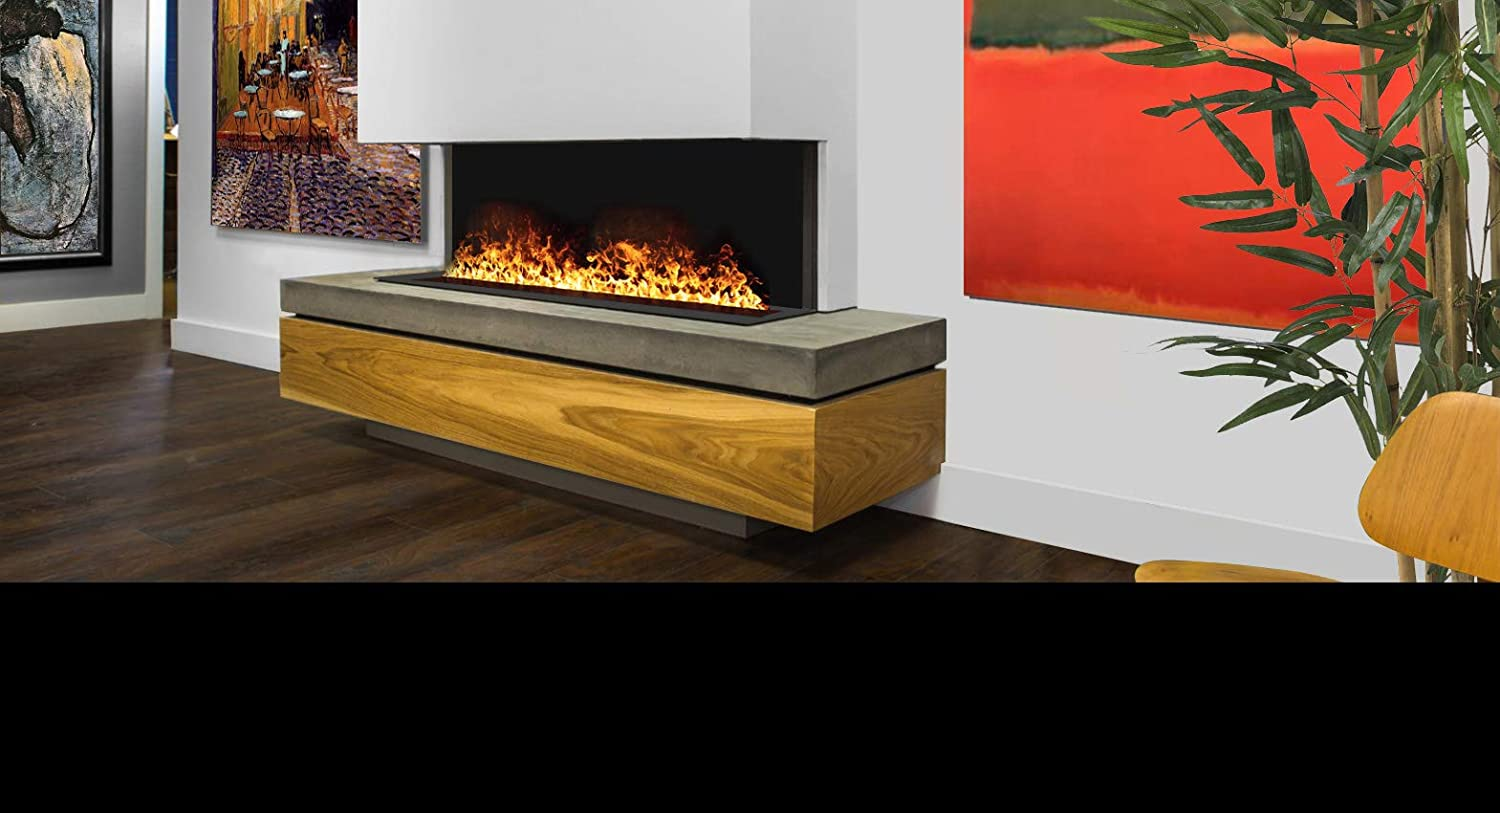 Afirewater Premium Water Vapor Fireplace Remote Control Flame 30 Realistic Flame Colors Ios Android App Enabled Ul Listed Awp 20 50 20 Unit Awp 40 100 40 Unit Awp 60 150 60 Unit 60 Inch Home